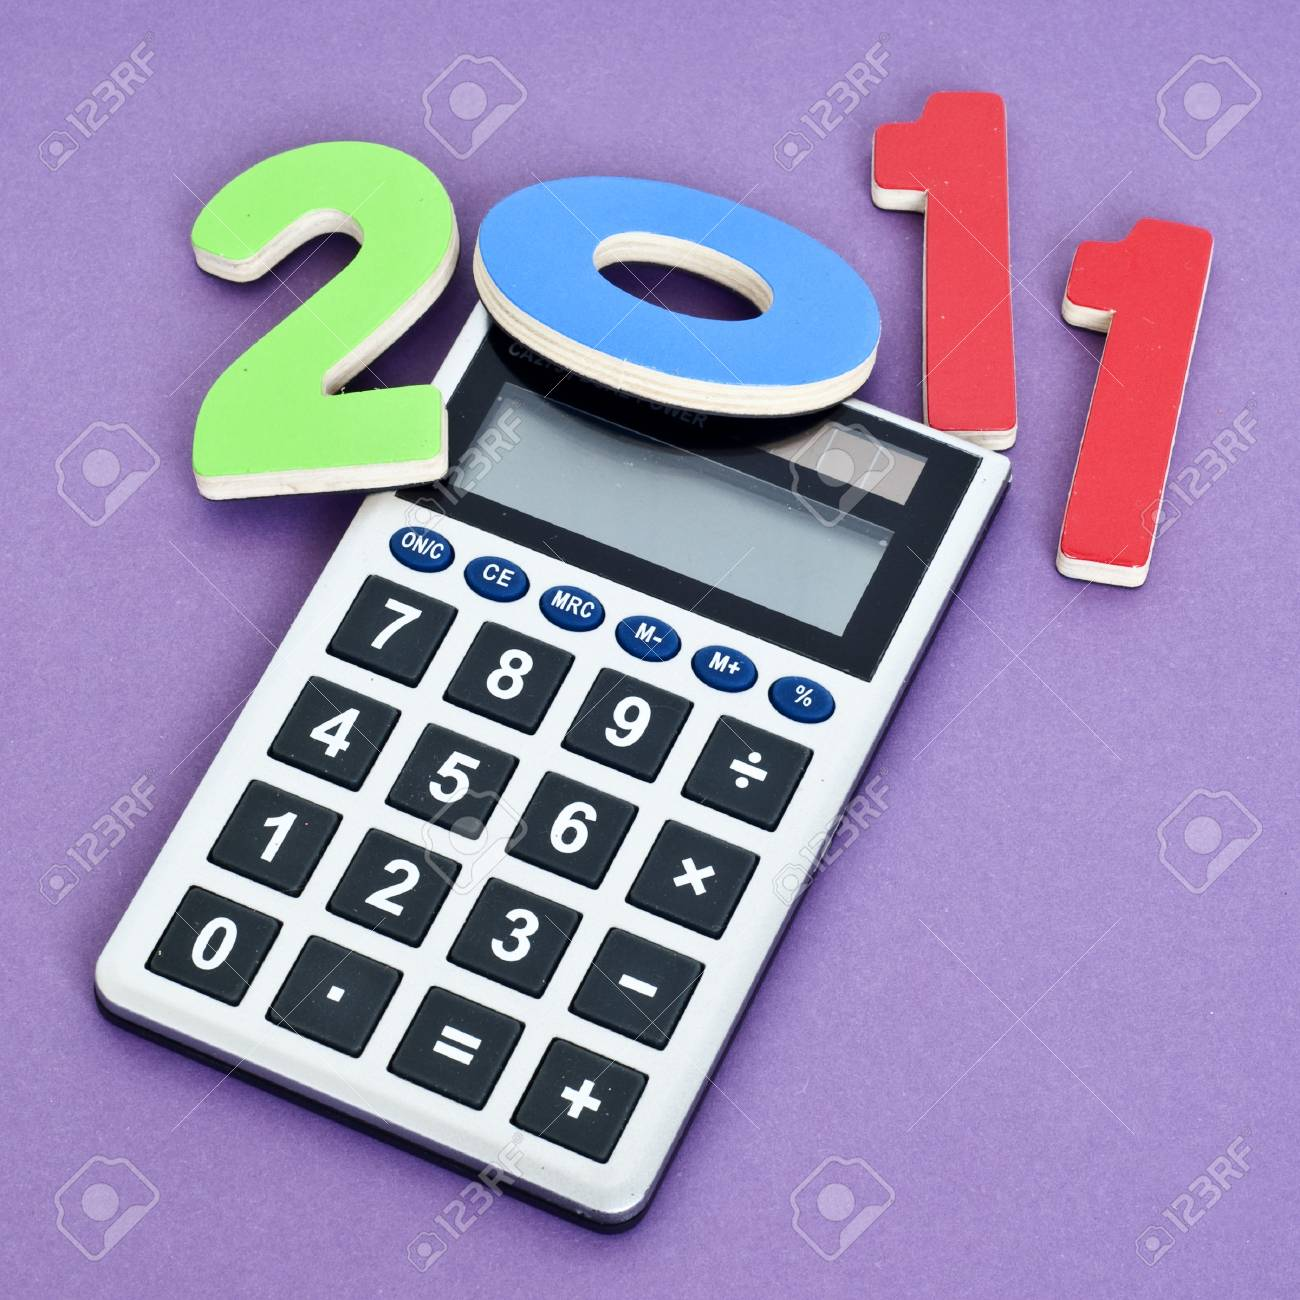 Calculating 2011 Money Concept Image for the New Year. Stock Photo - 8135247